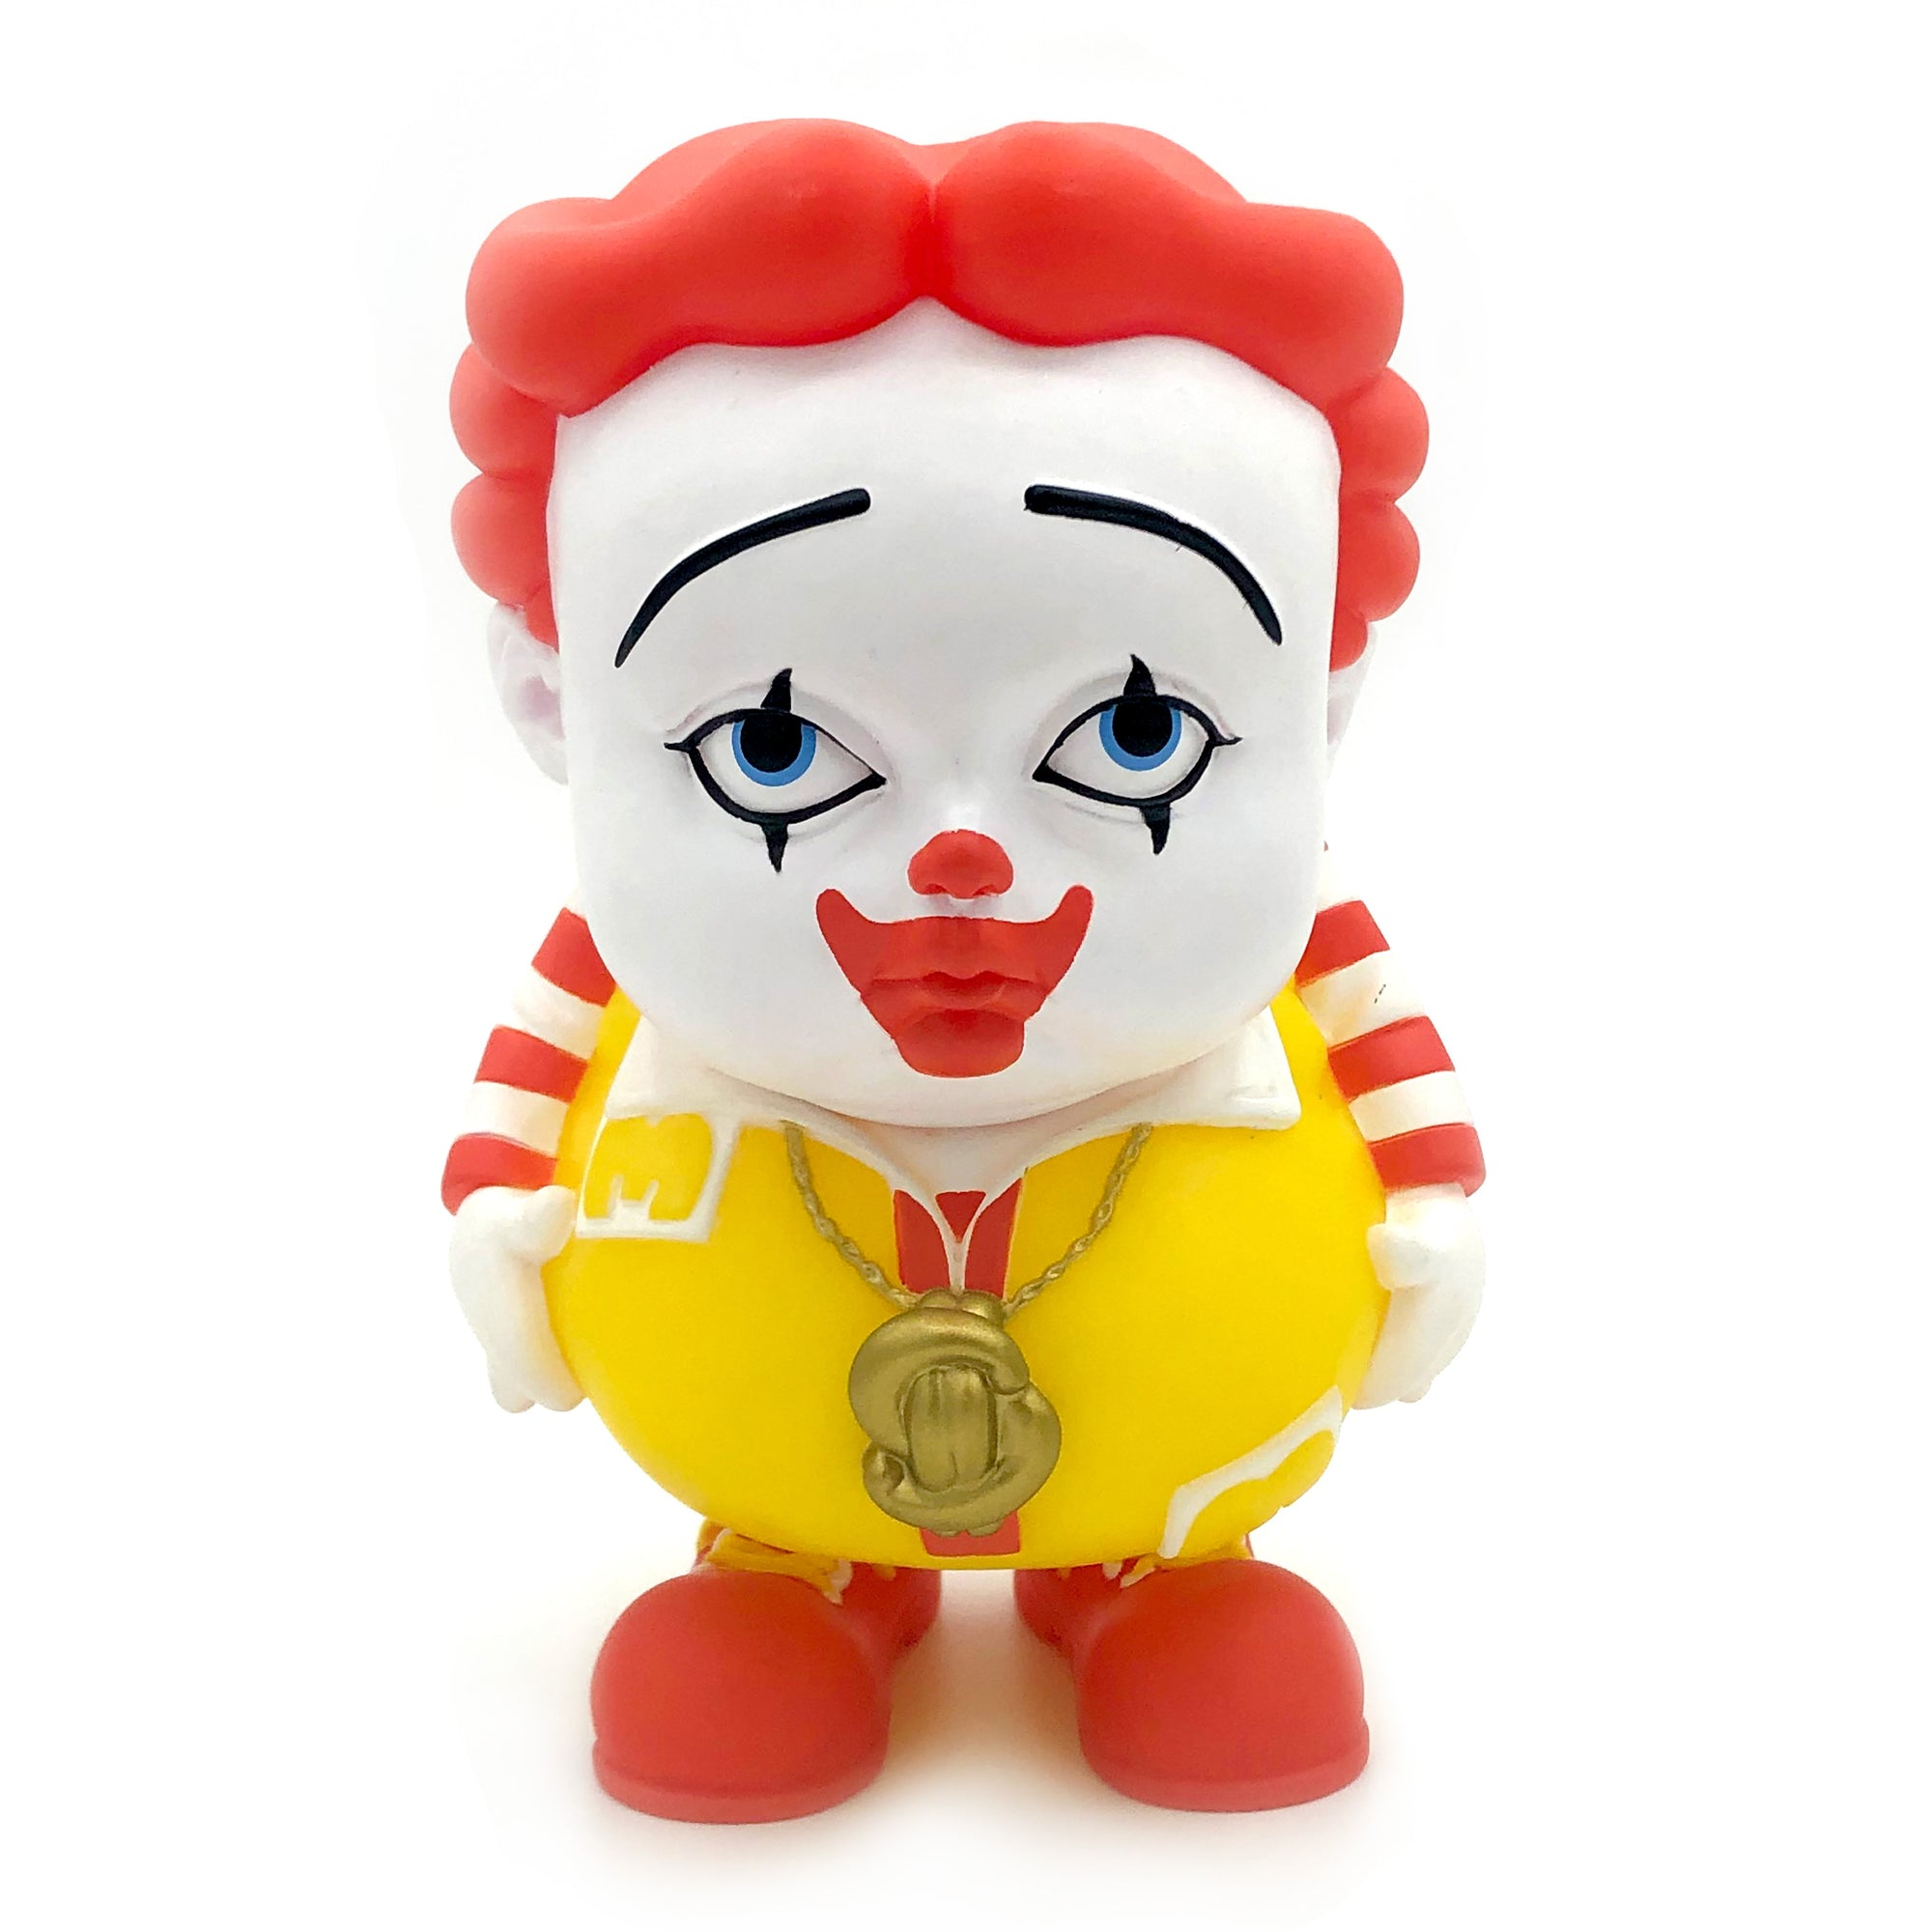 Popaganda Ron English Young MC Designer Vinyl Figure by Ron English